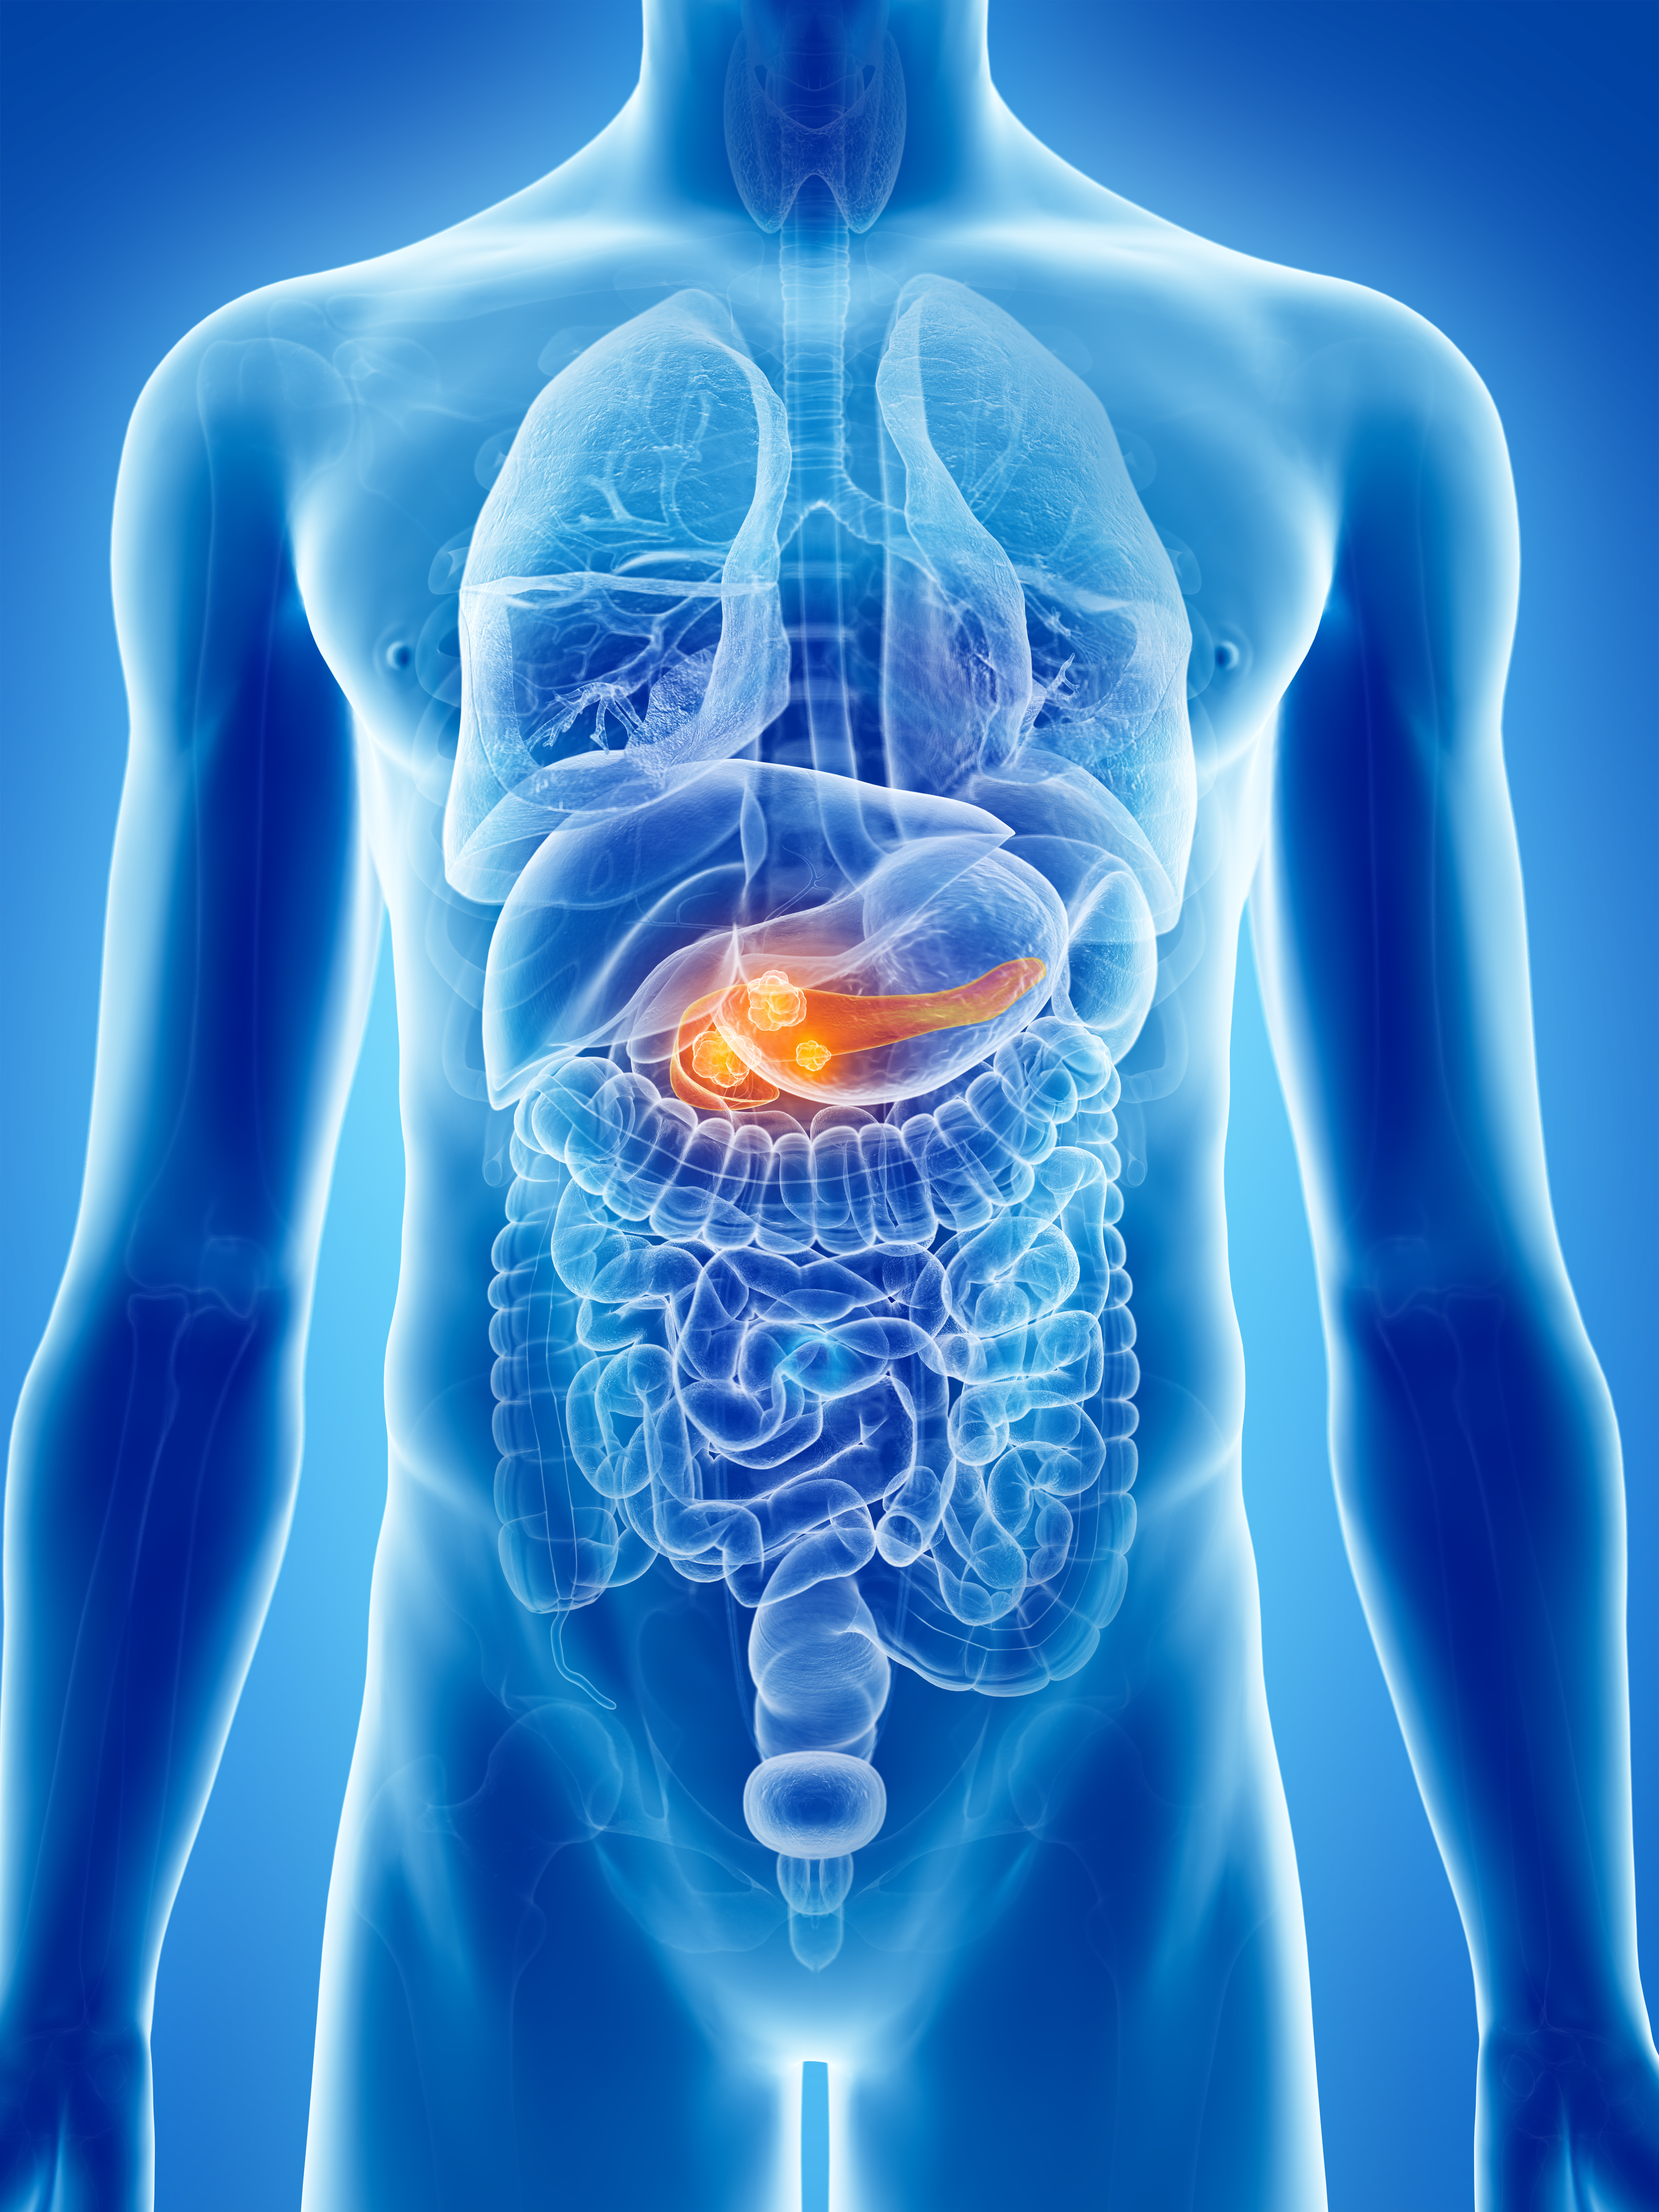 Efficacy and Safety of FOLFIRI for Previously Treated Advanced Pancreatic Cancer